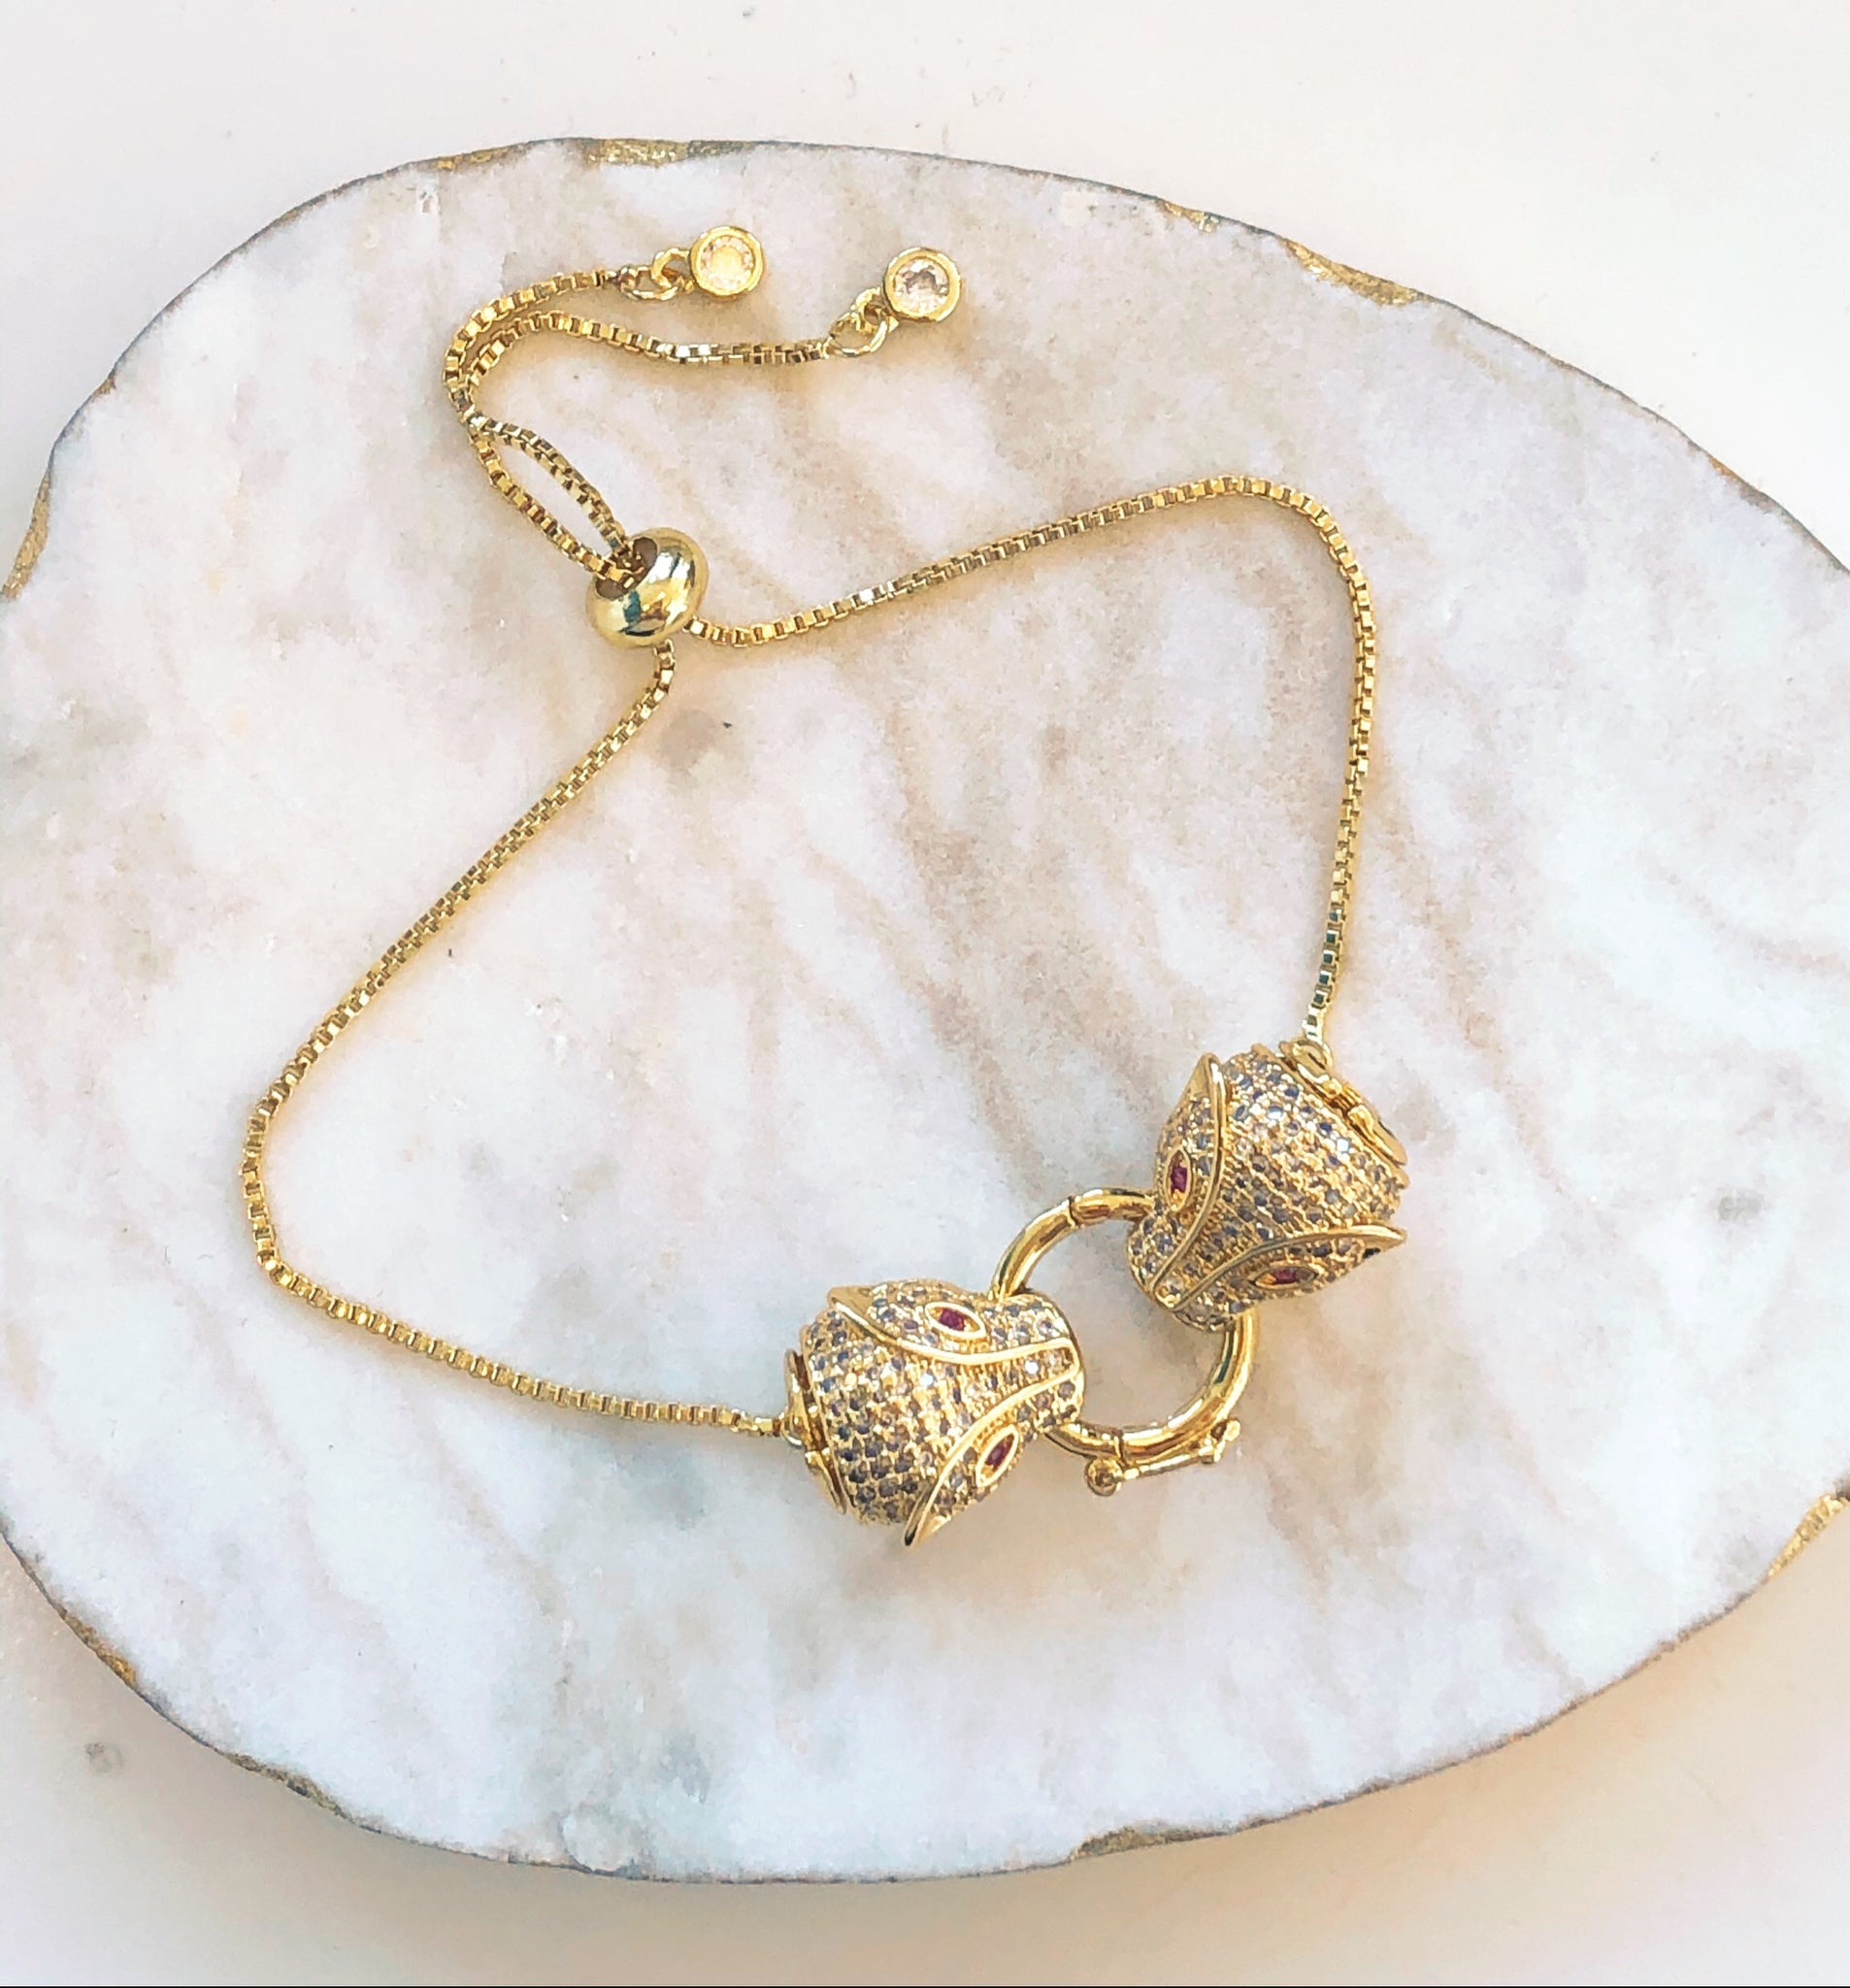 Lola Tiger Gold Filled Bracelet